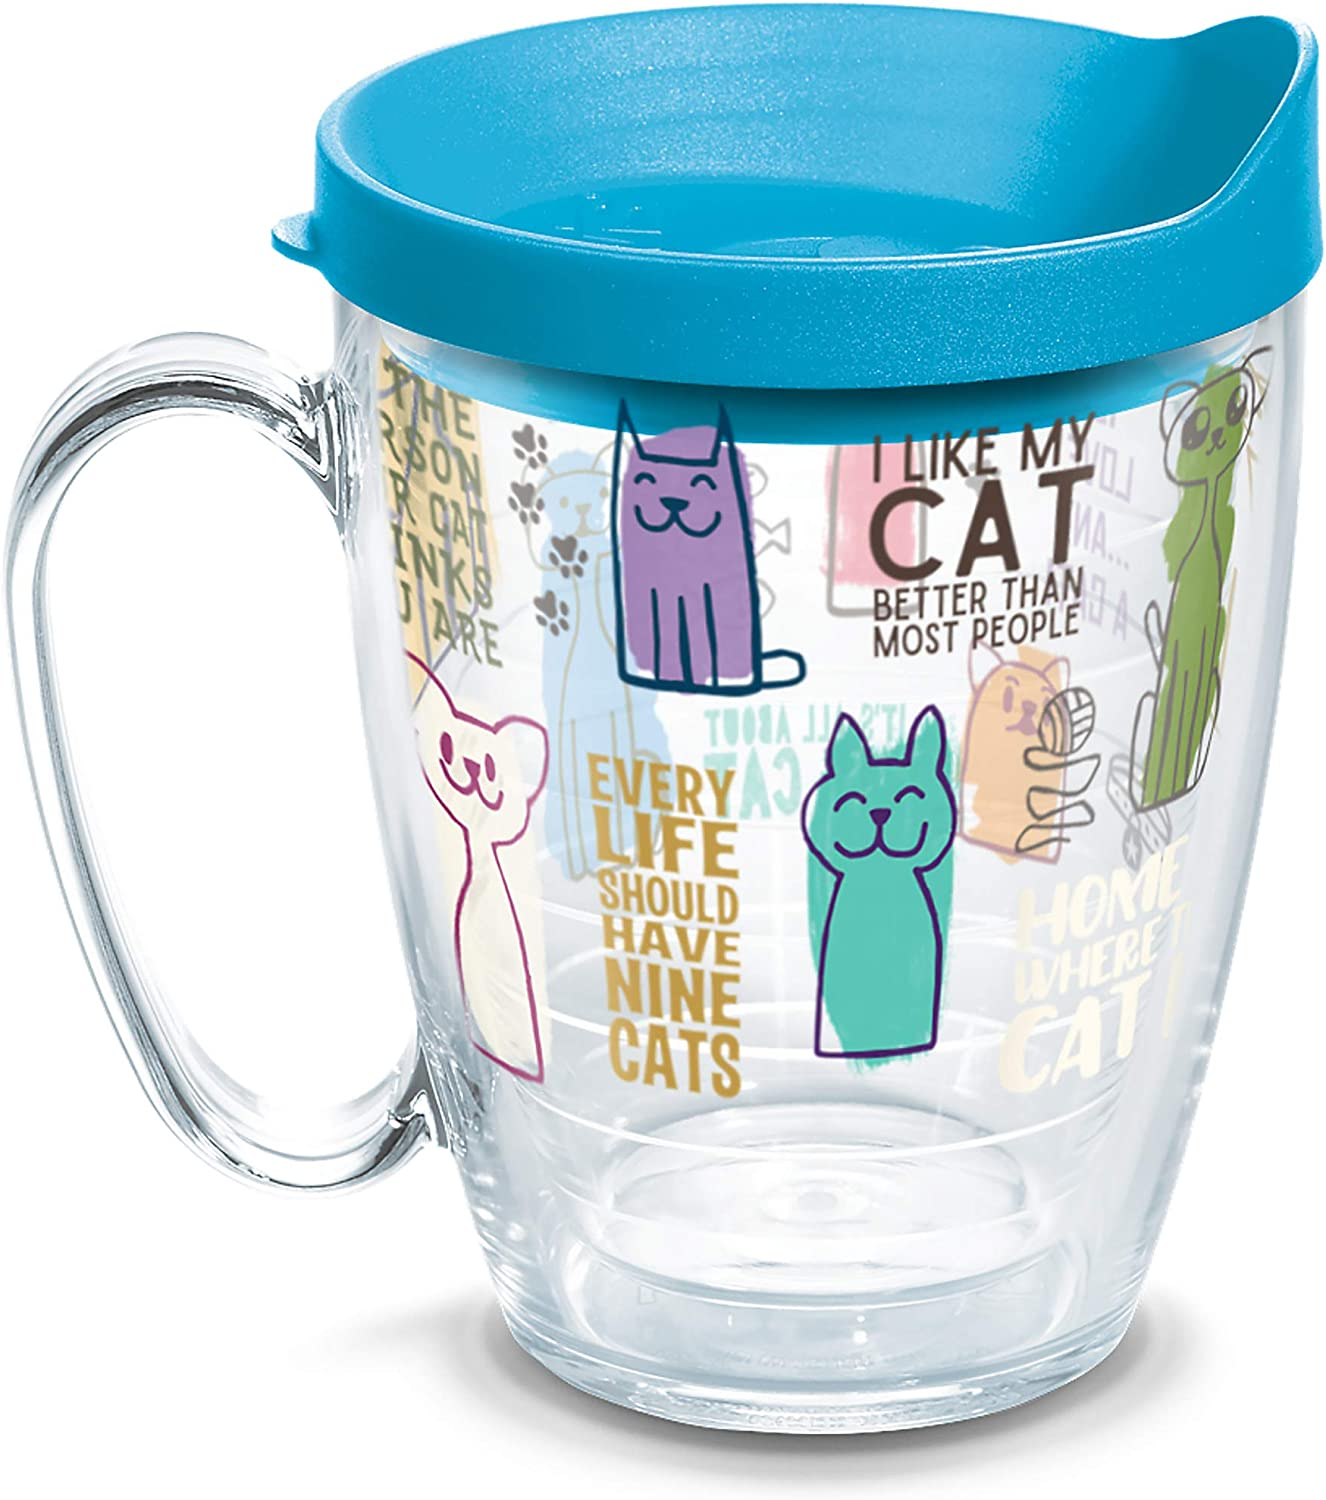 Tervis Cat Sayings Insulated Tumbler with Wrap and Turquoise Lid, 16oz Mug, Clear